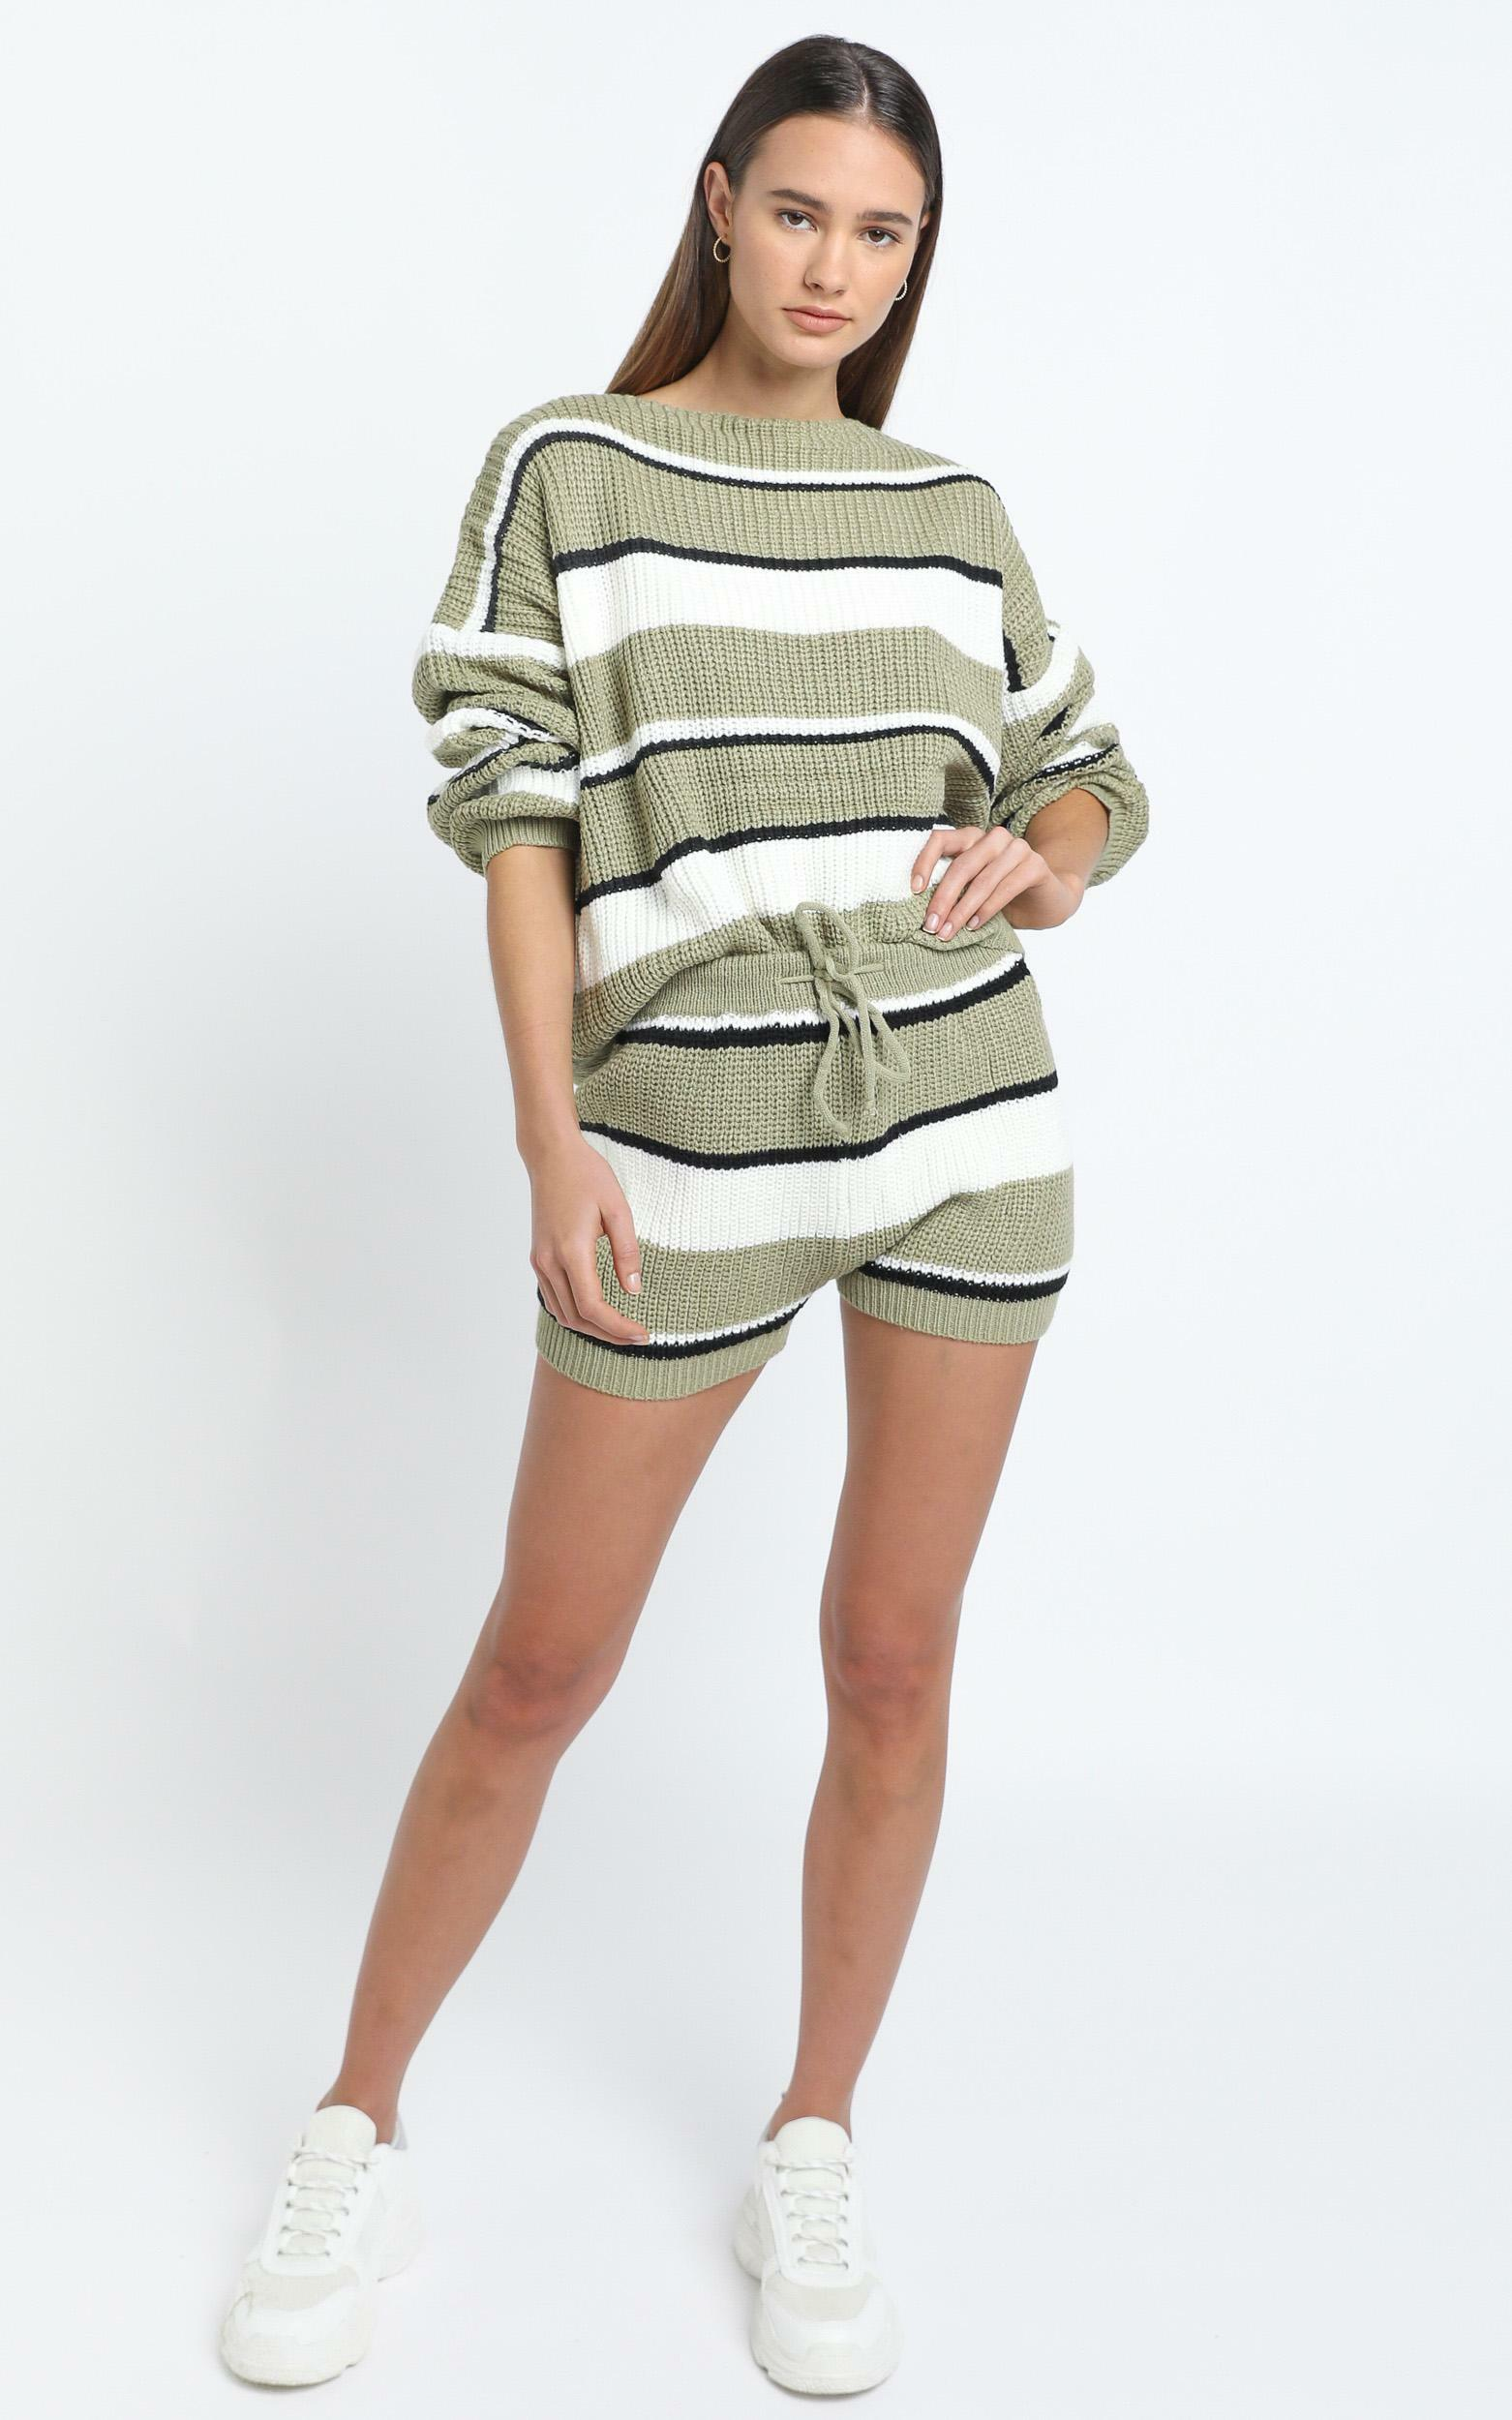 Eeva Two Piece Set in Green Stripe - L/XL, Green, hi-res image number null